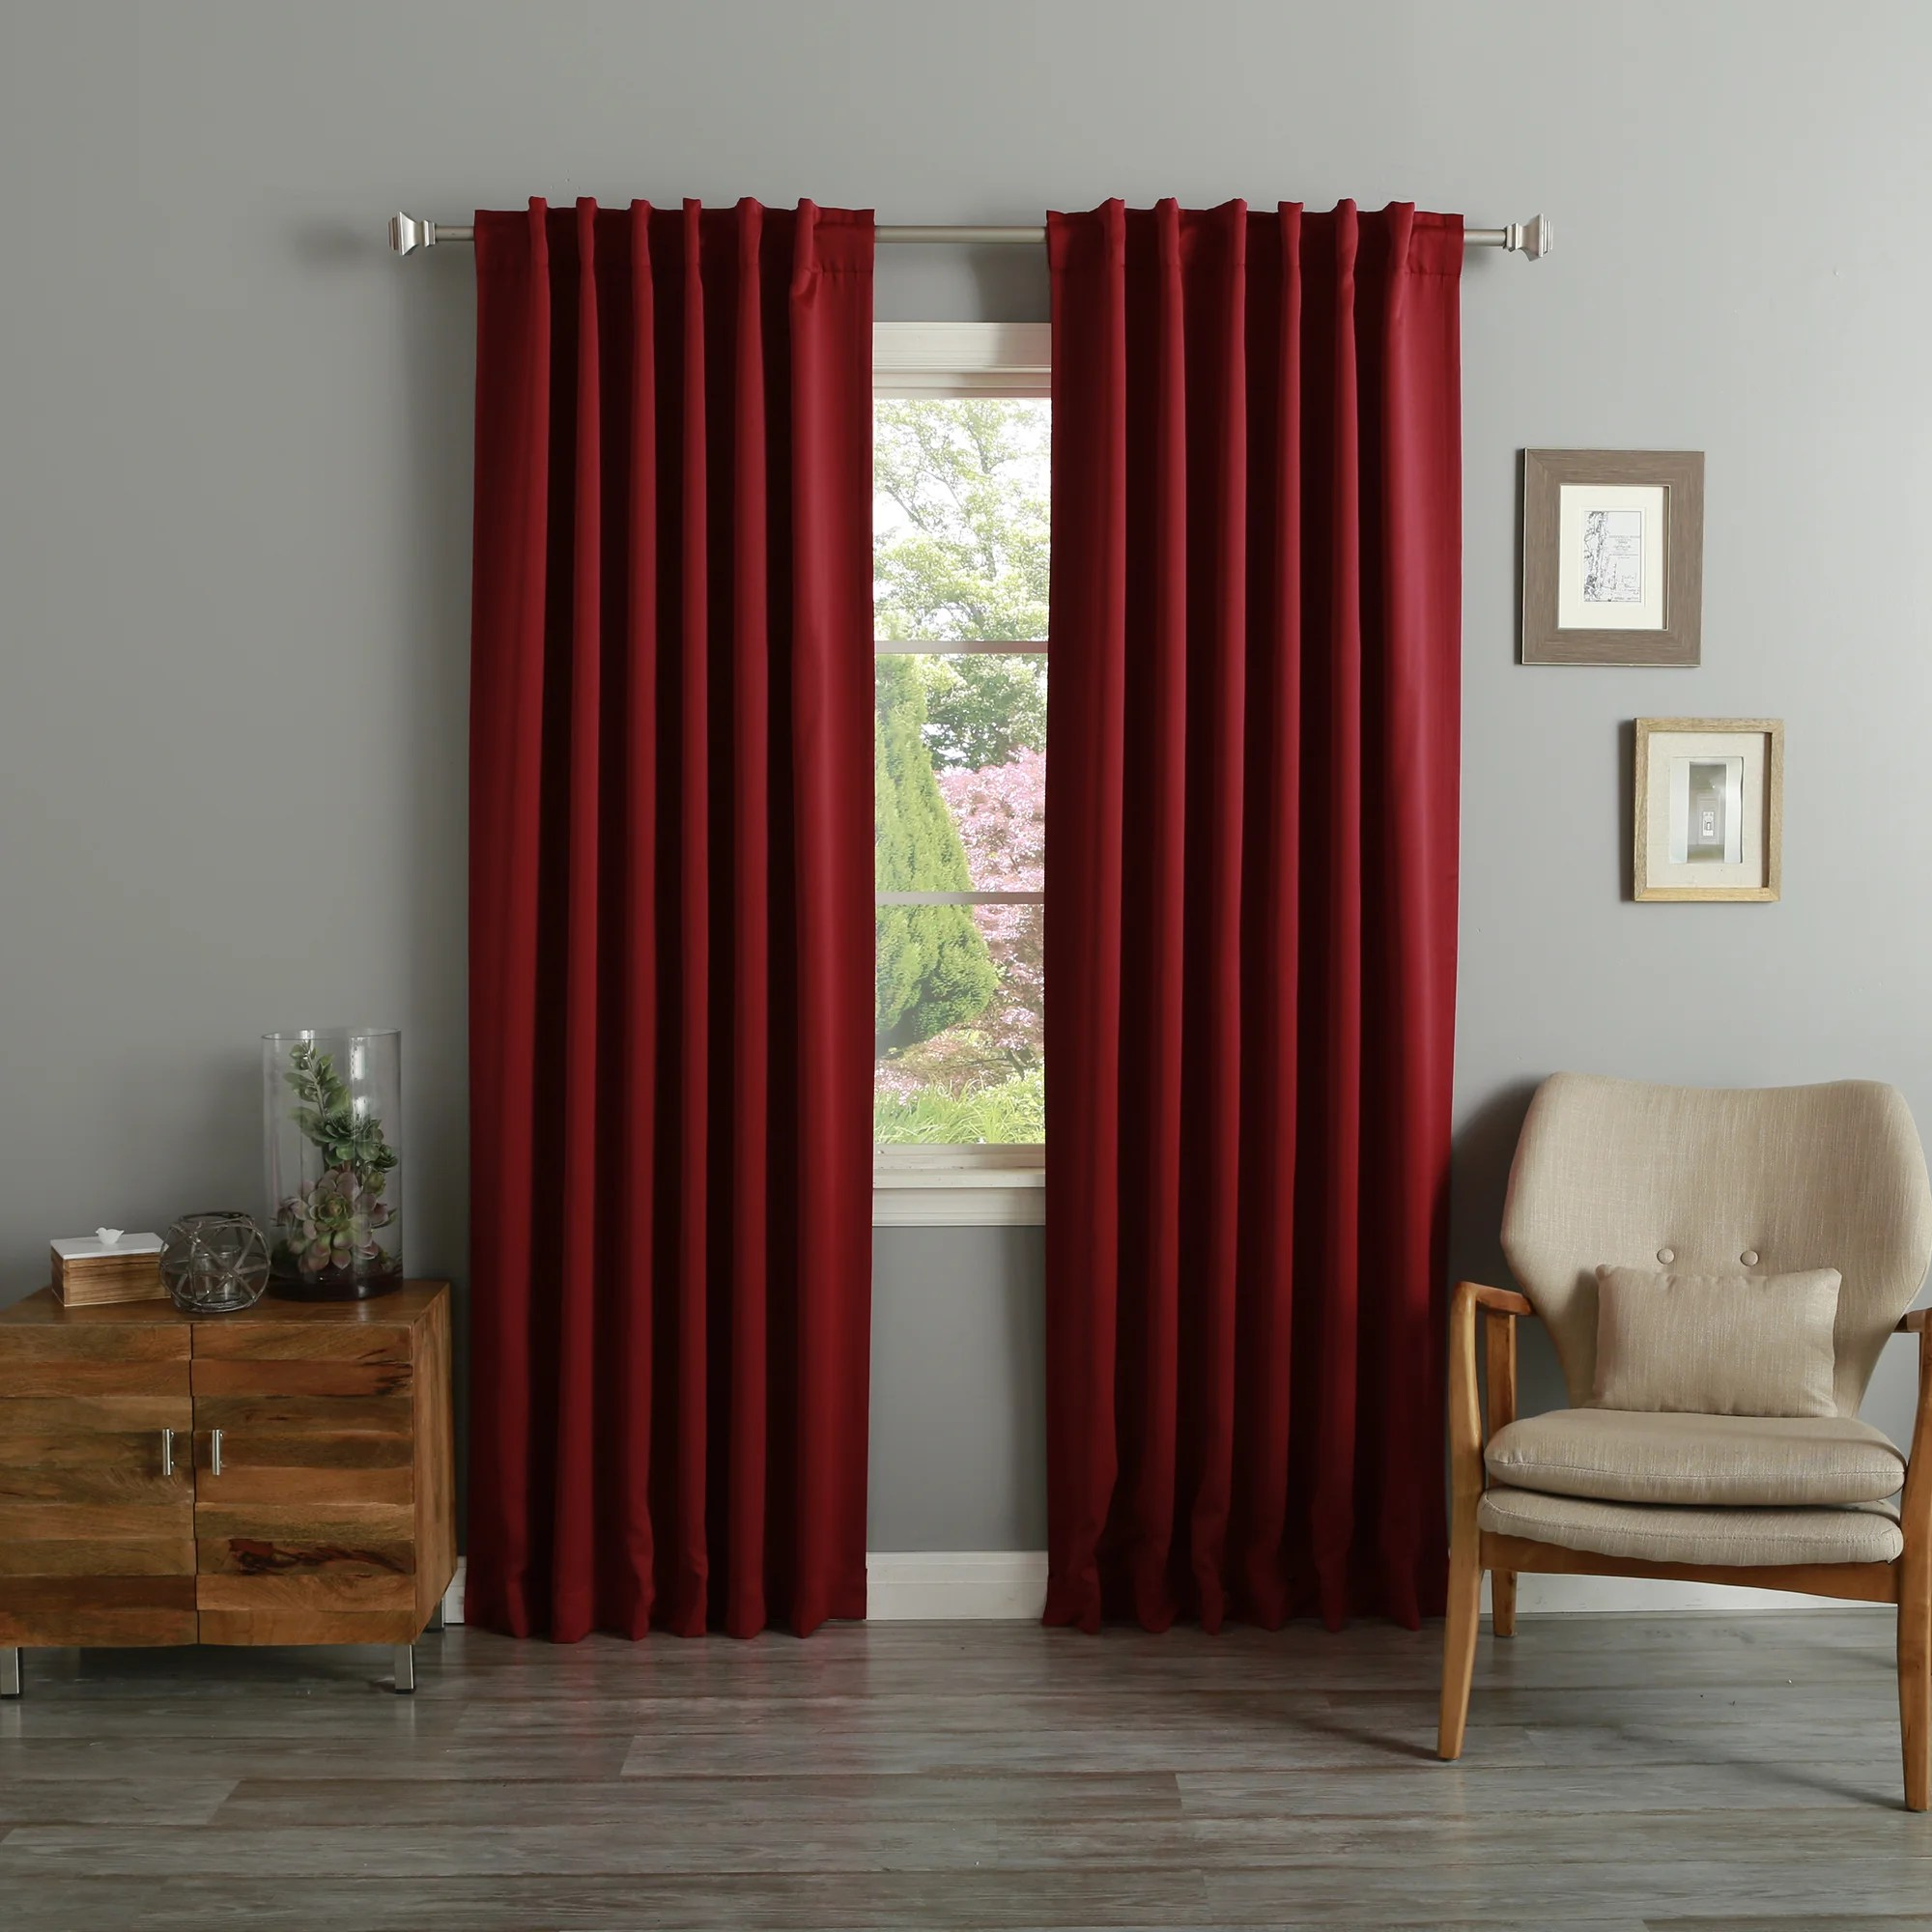 94 Inch Blackout Curtains Aurora Home Thermal Rod Pocket 96 Inch Blackout Curtain Panel Pair 52 X 96